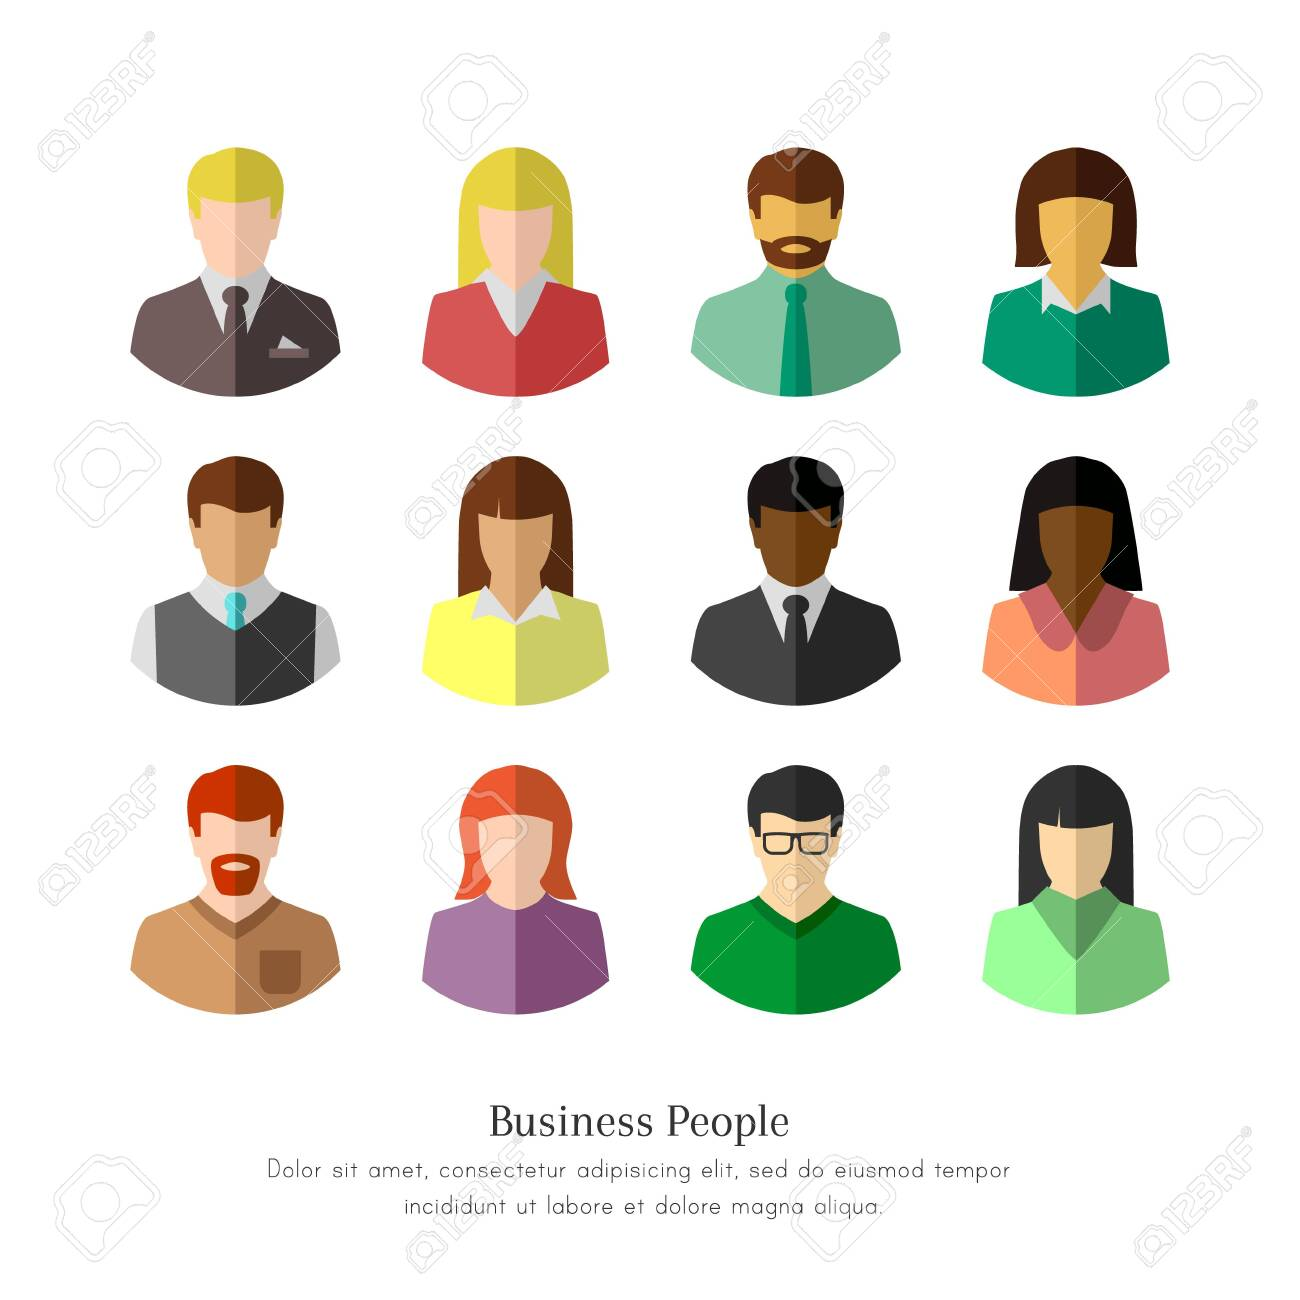 Diverse business people in flat design. Isolated icon set on white background. - 145714362